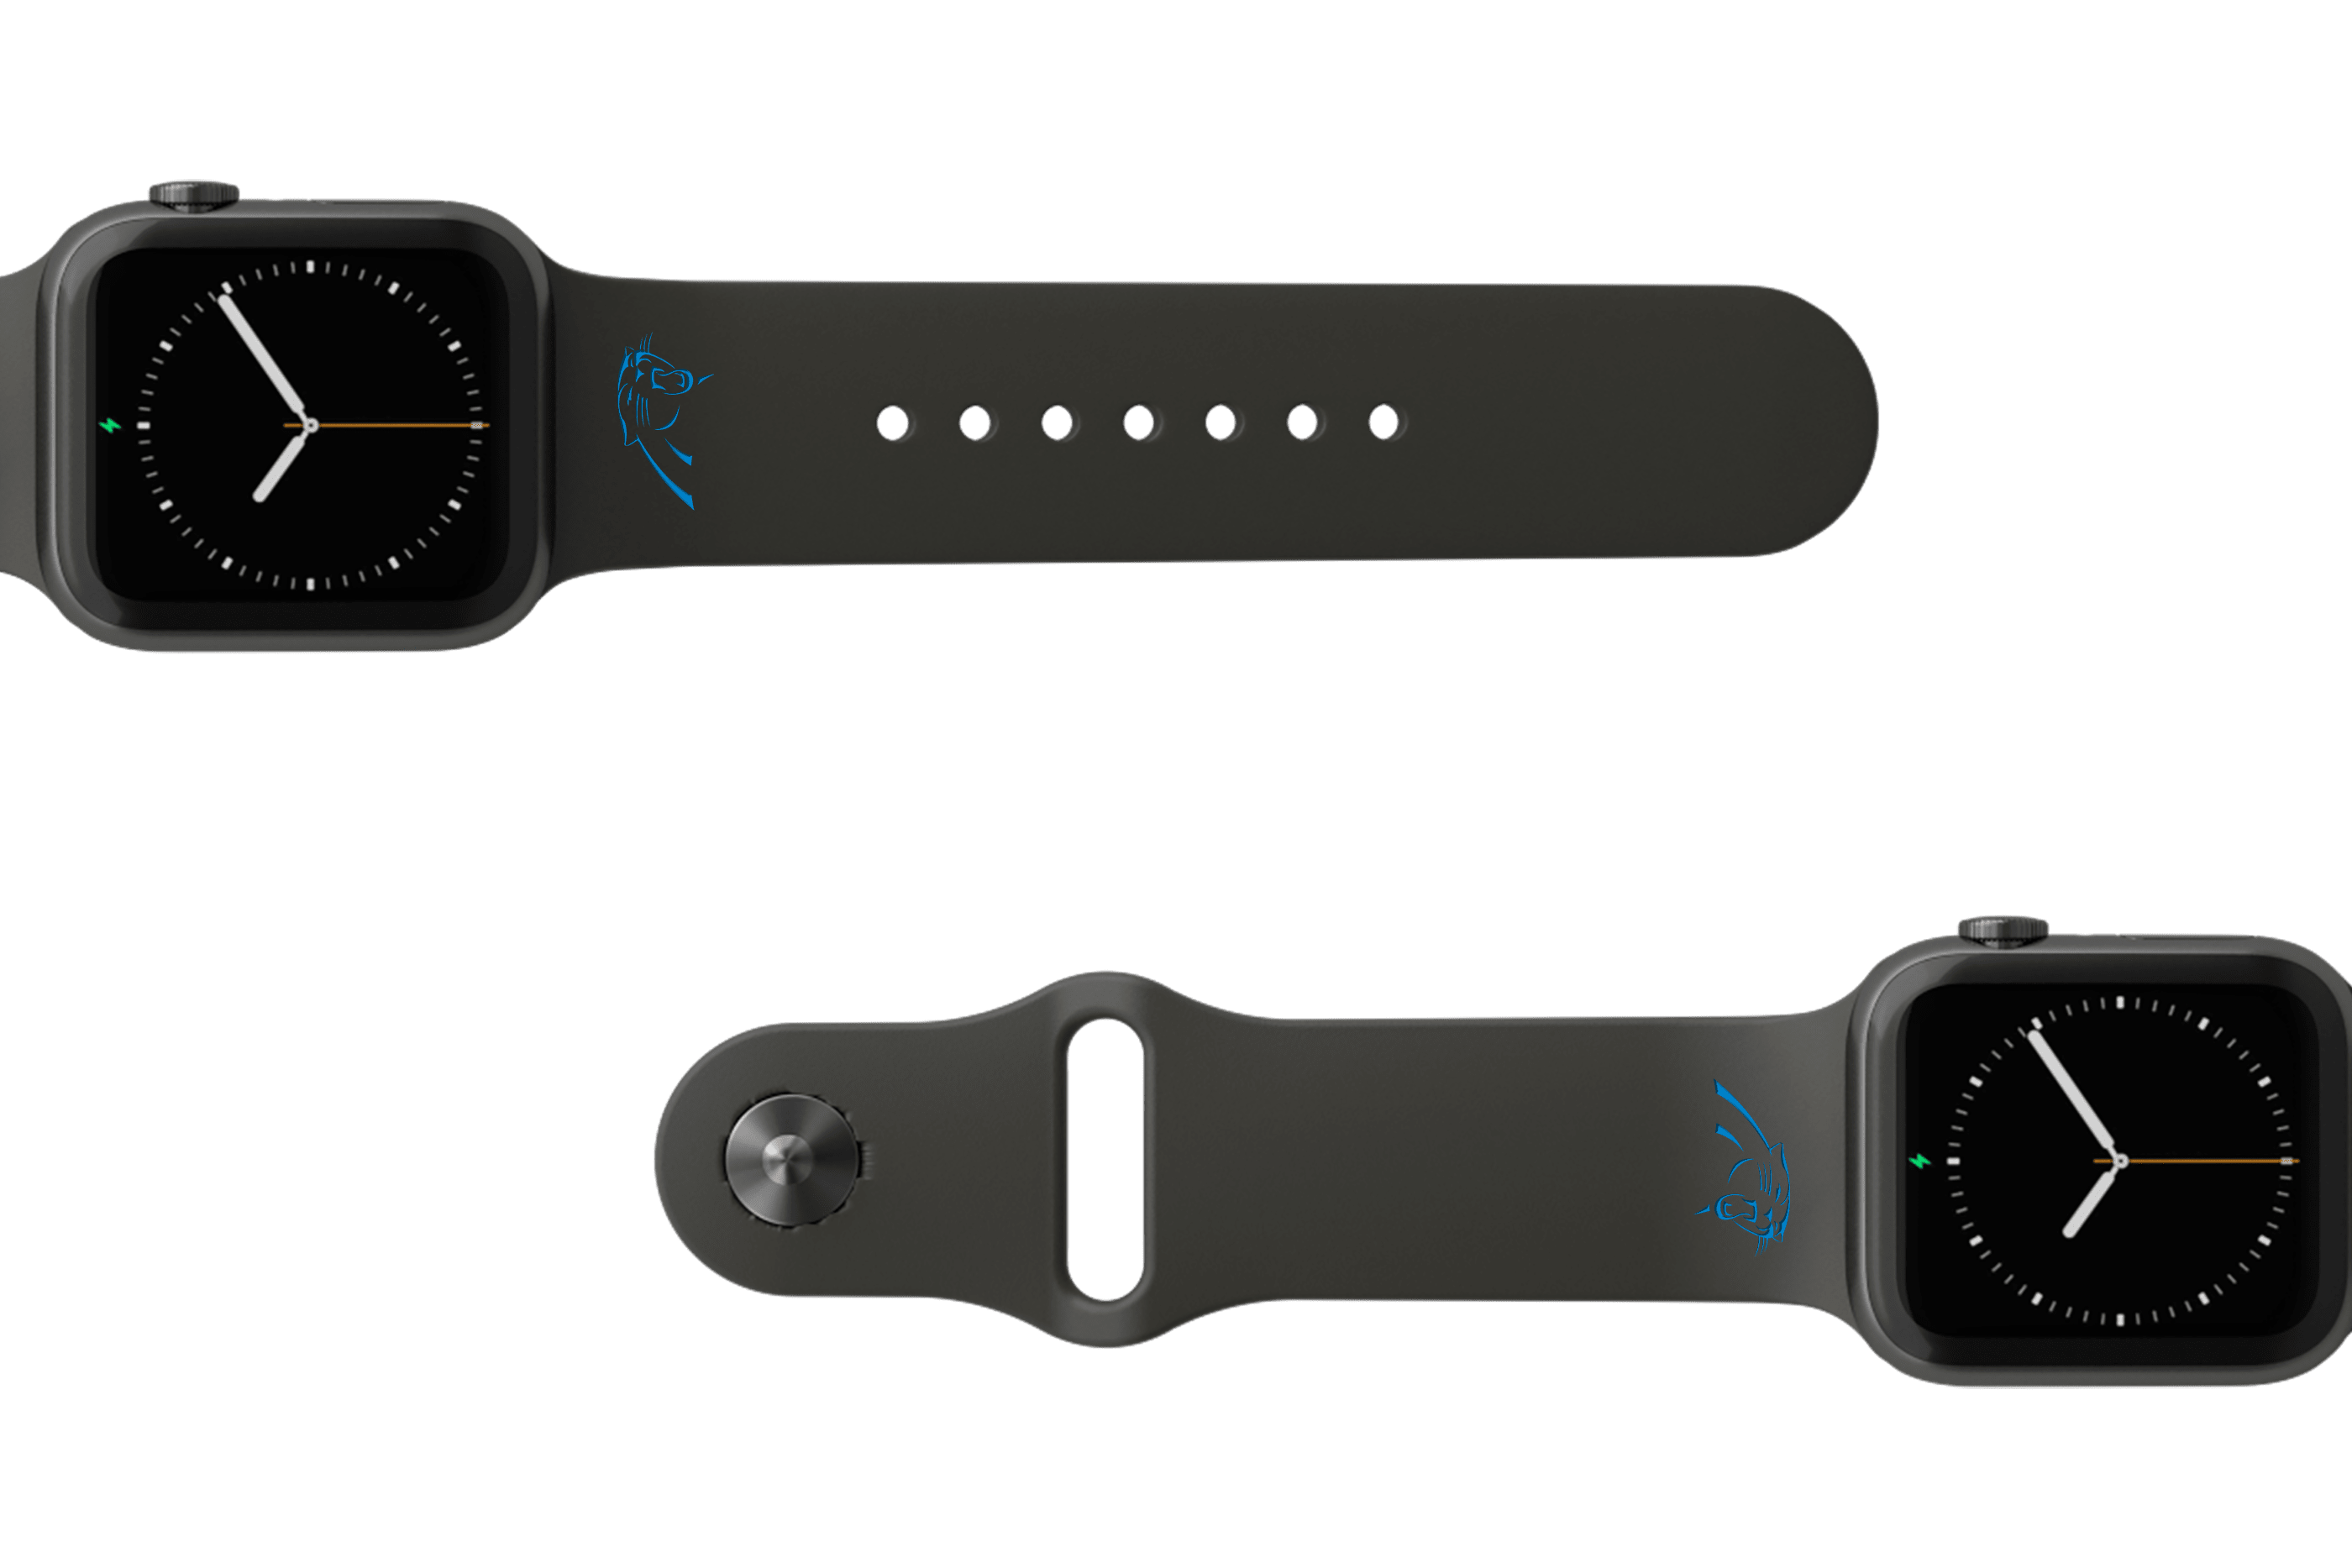 NFL Carolina Panthers Black   apple watch band with gray hardware viewed from top down